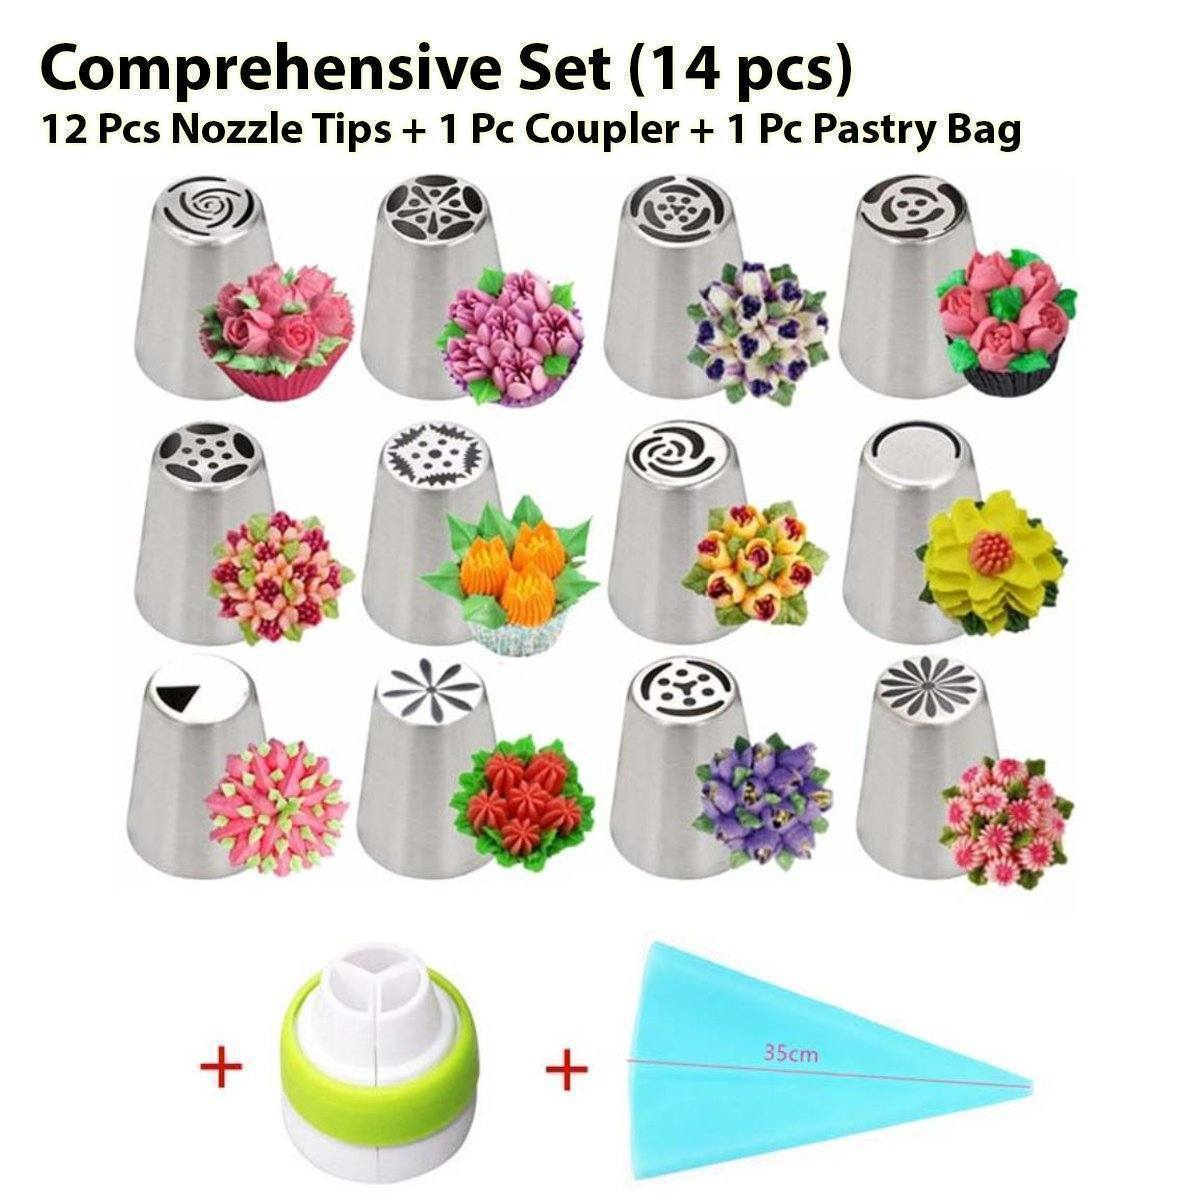 Cake & Dessert Decorating Nozzles Set Kitchen summertwinkle Comprehensive Set